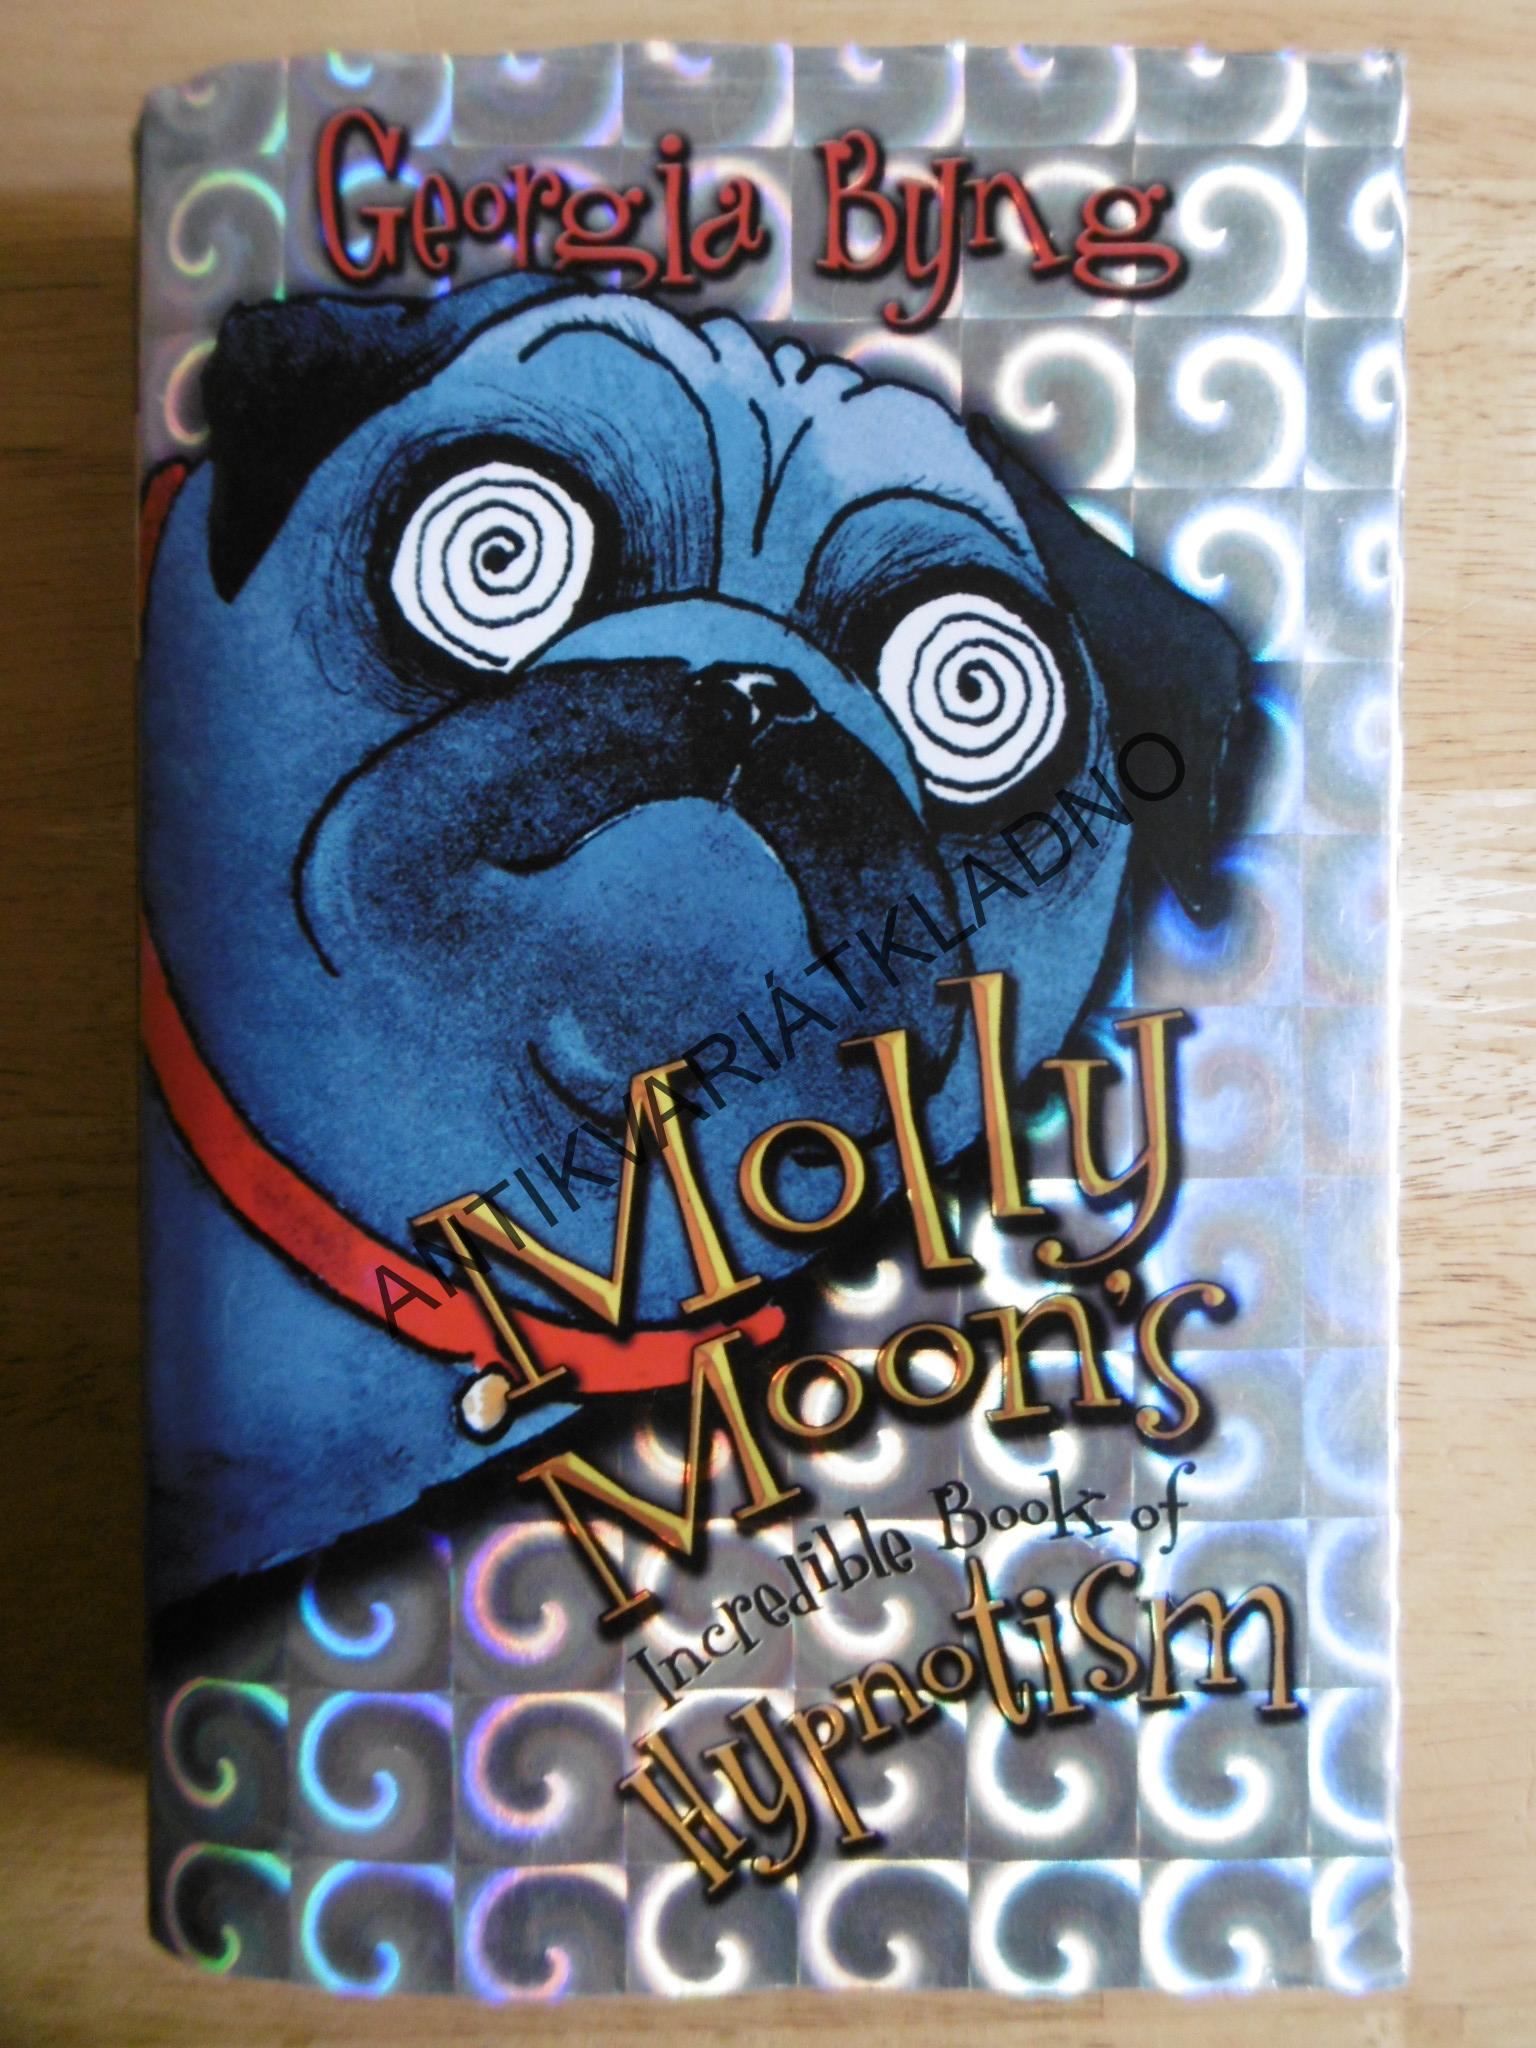 INCREDIBLE BOOK OF HYPNOTISM, MOLLY MOON´S, GEORGIA BYNS, ANGLICKY